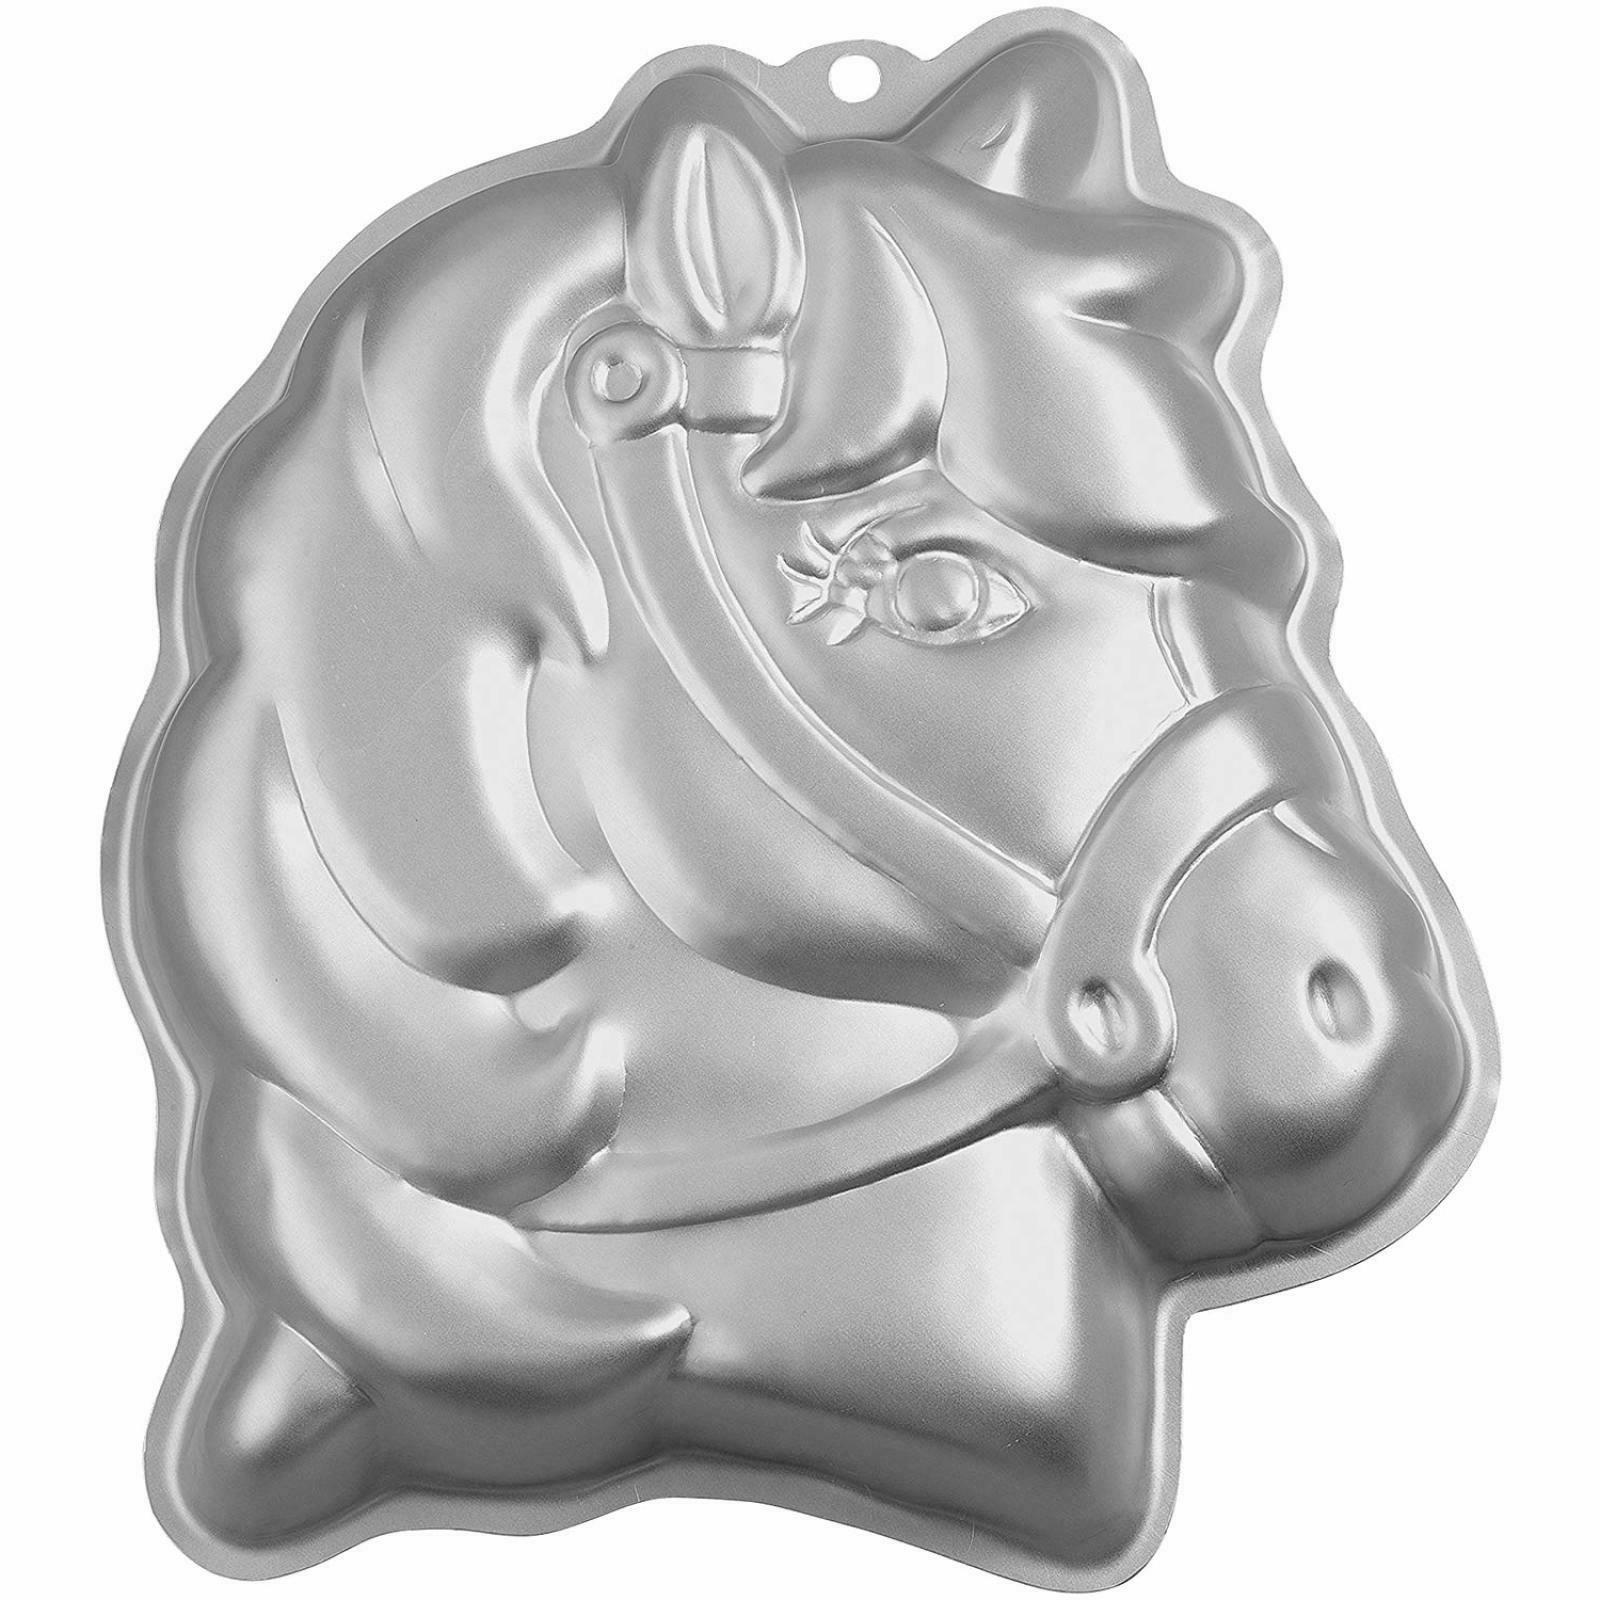 Wilton 3-D Pony Cake Baking Pan, Makes Perfect Horse or Unic